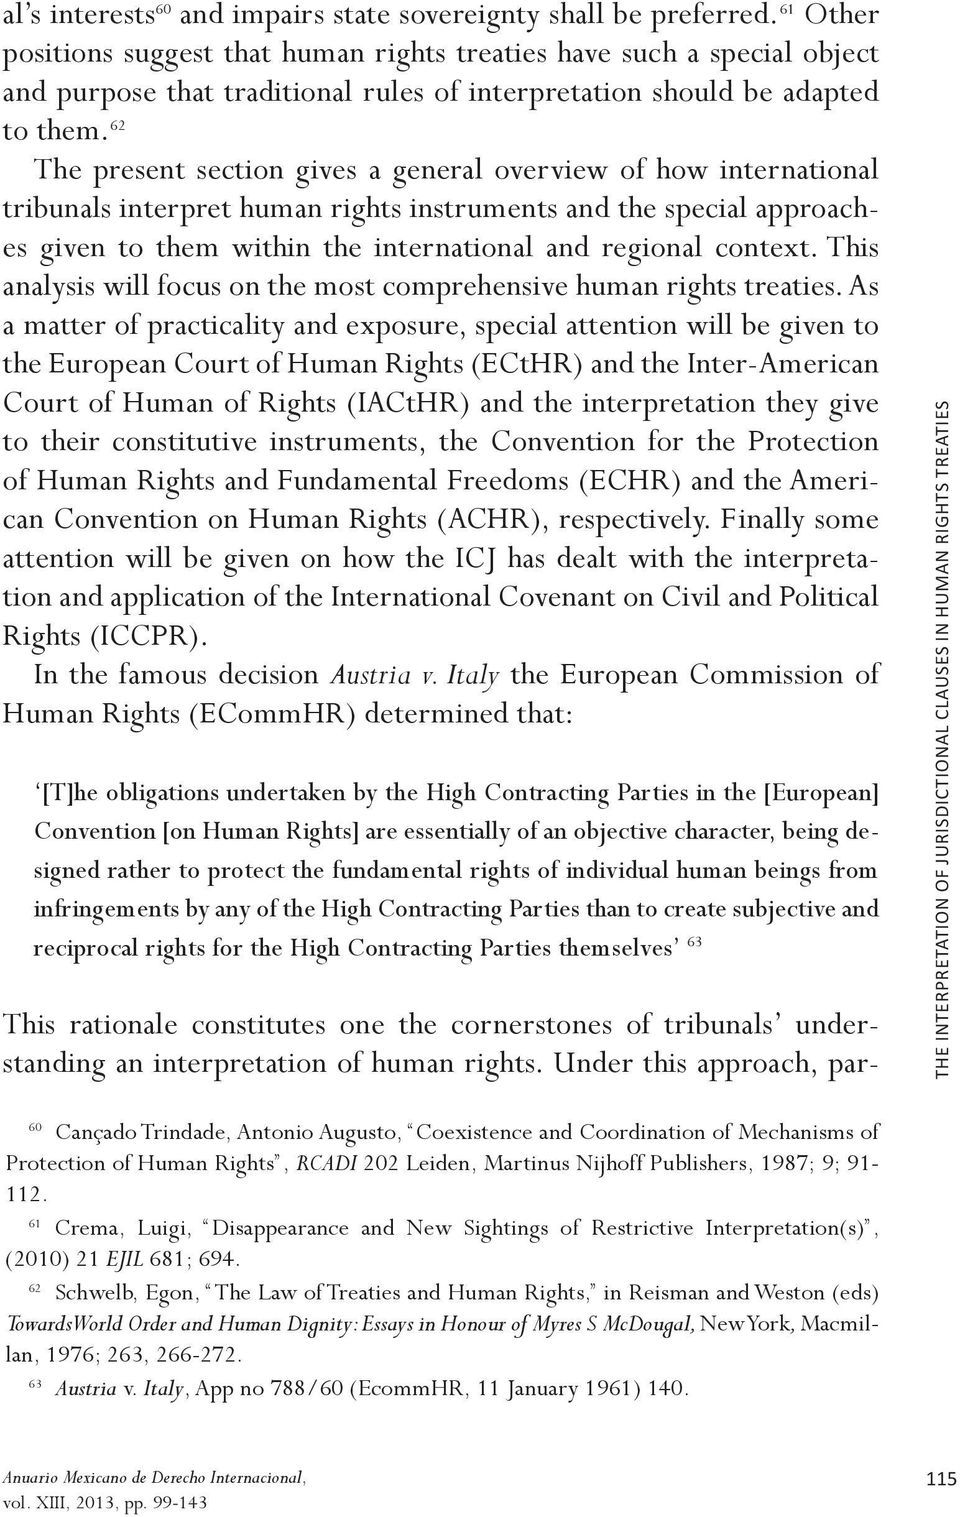 62 The present section gives a general overview of how international tribunals interpret human rights instruments and the special approaches given to them within the international and regional